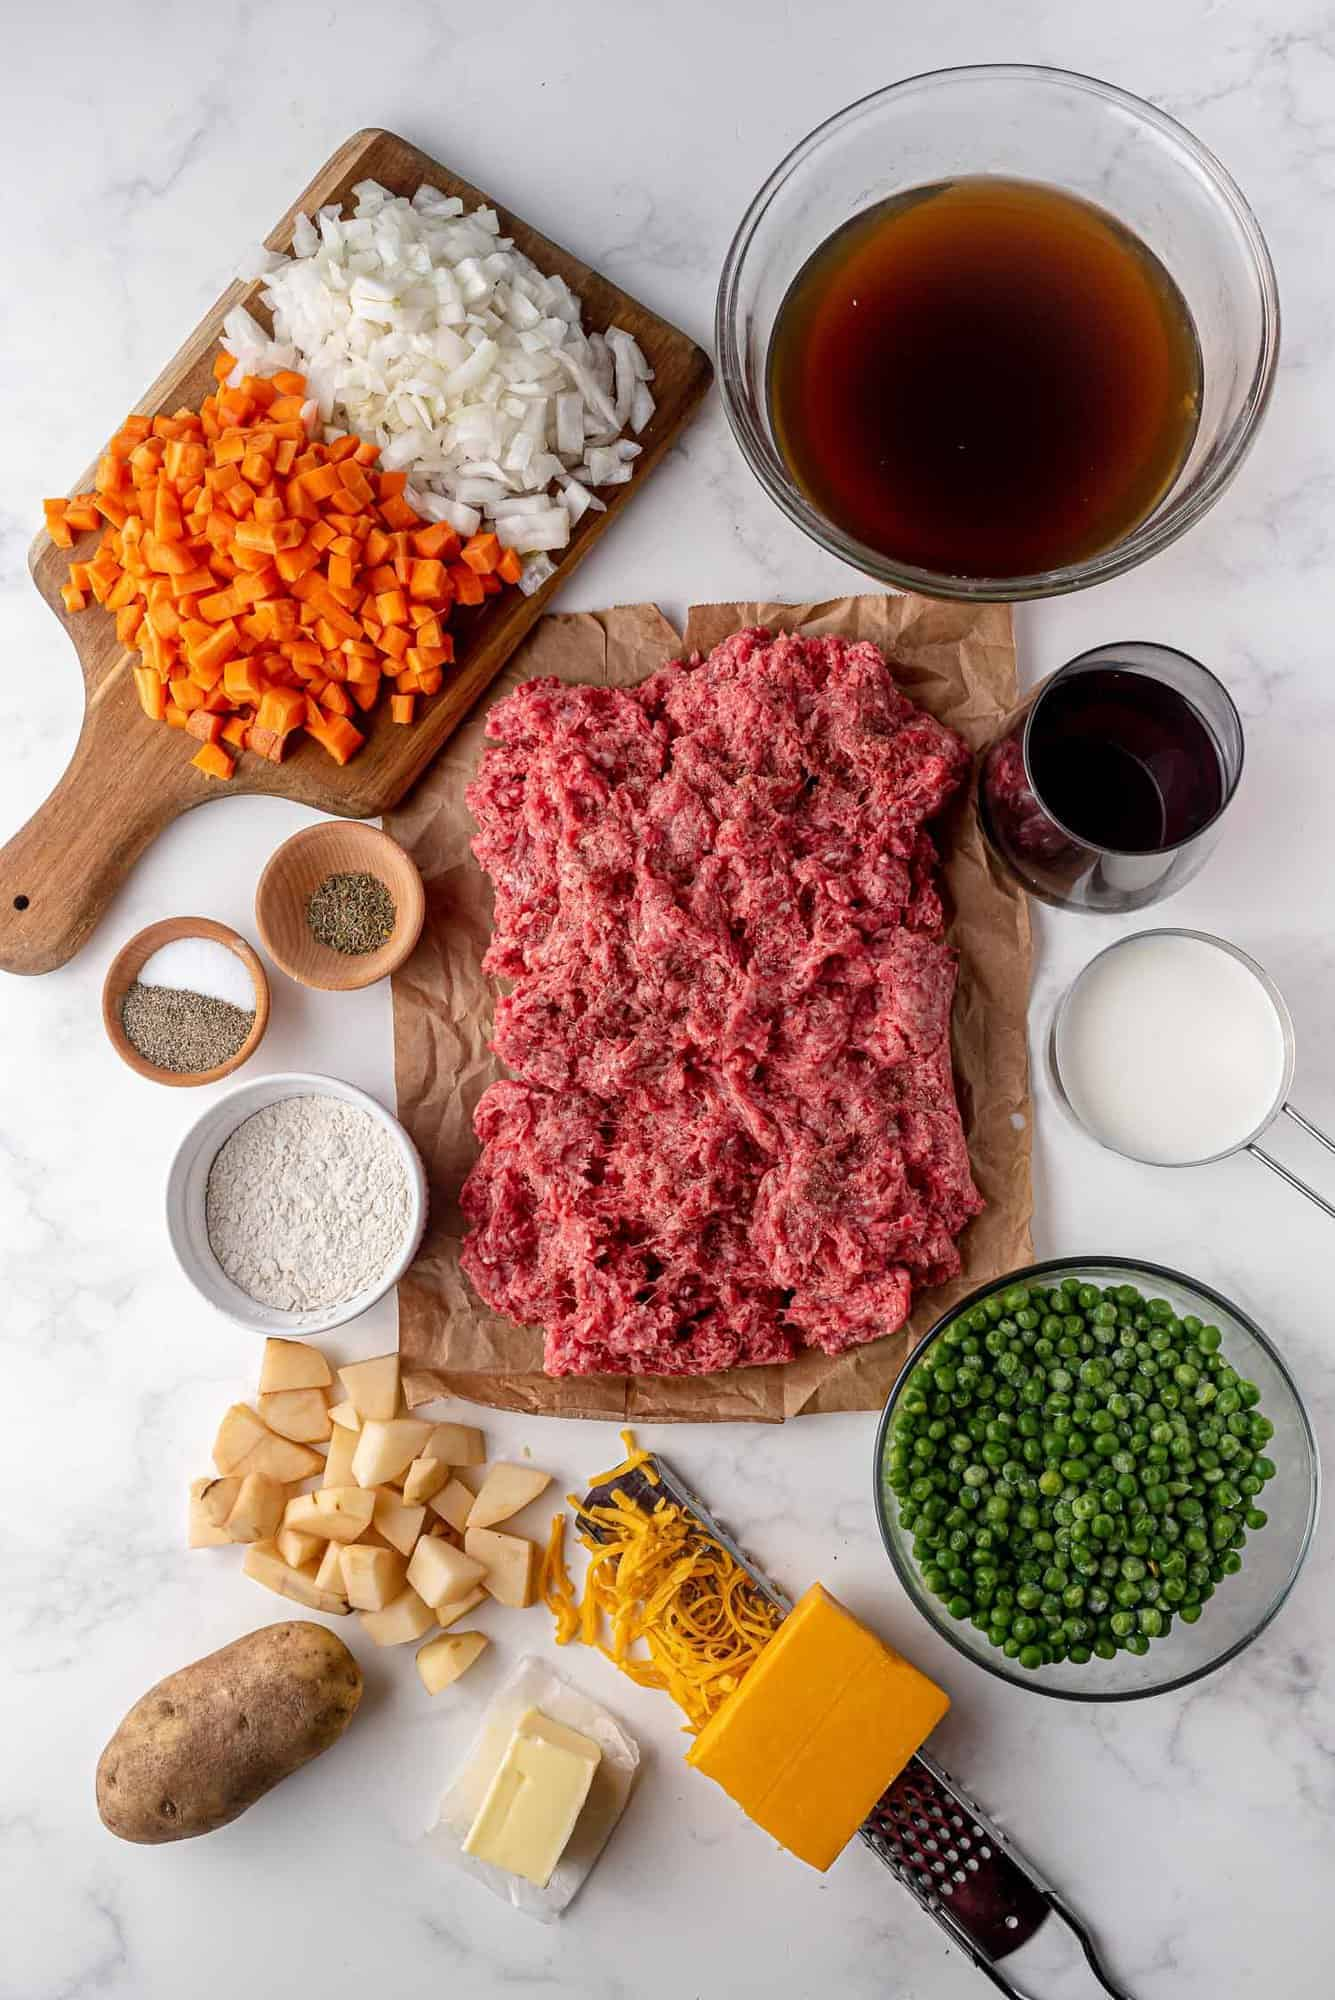 Overhead view of ingredients: Ground meat, vegetables, wine, cheese, potatoes, and seasoning.